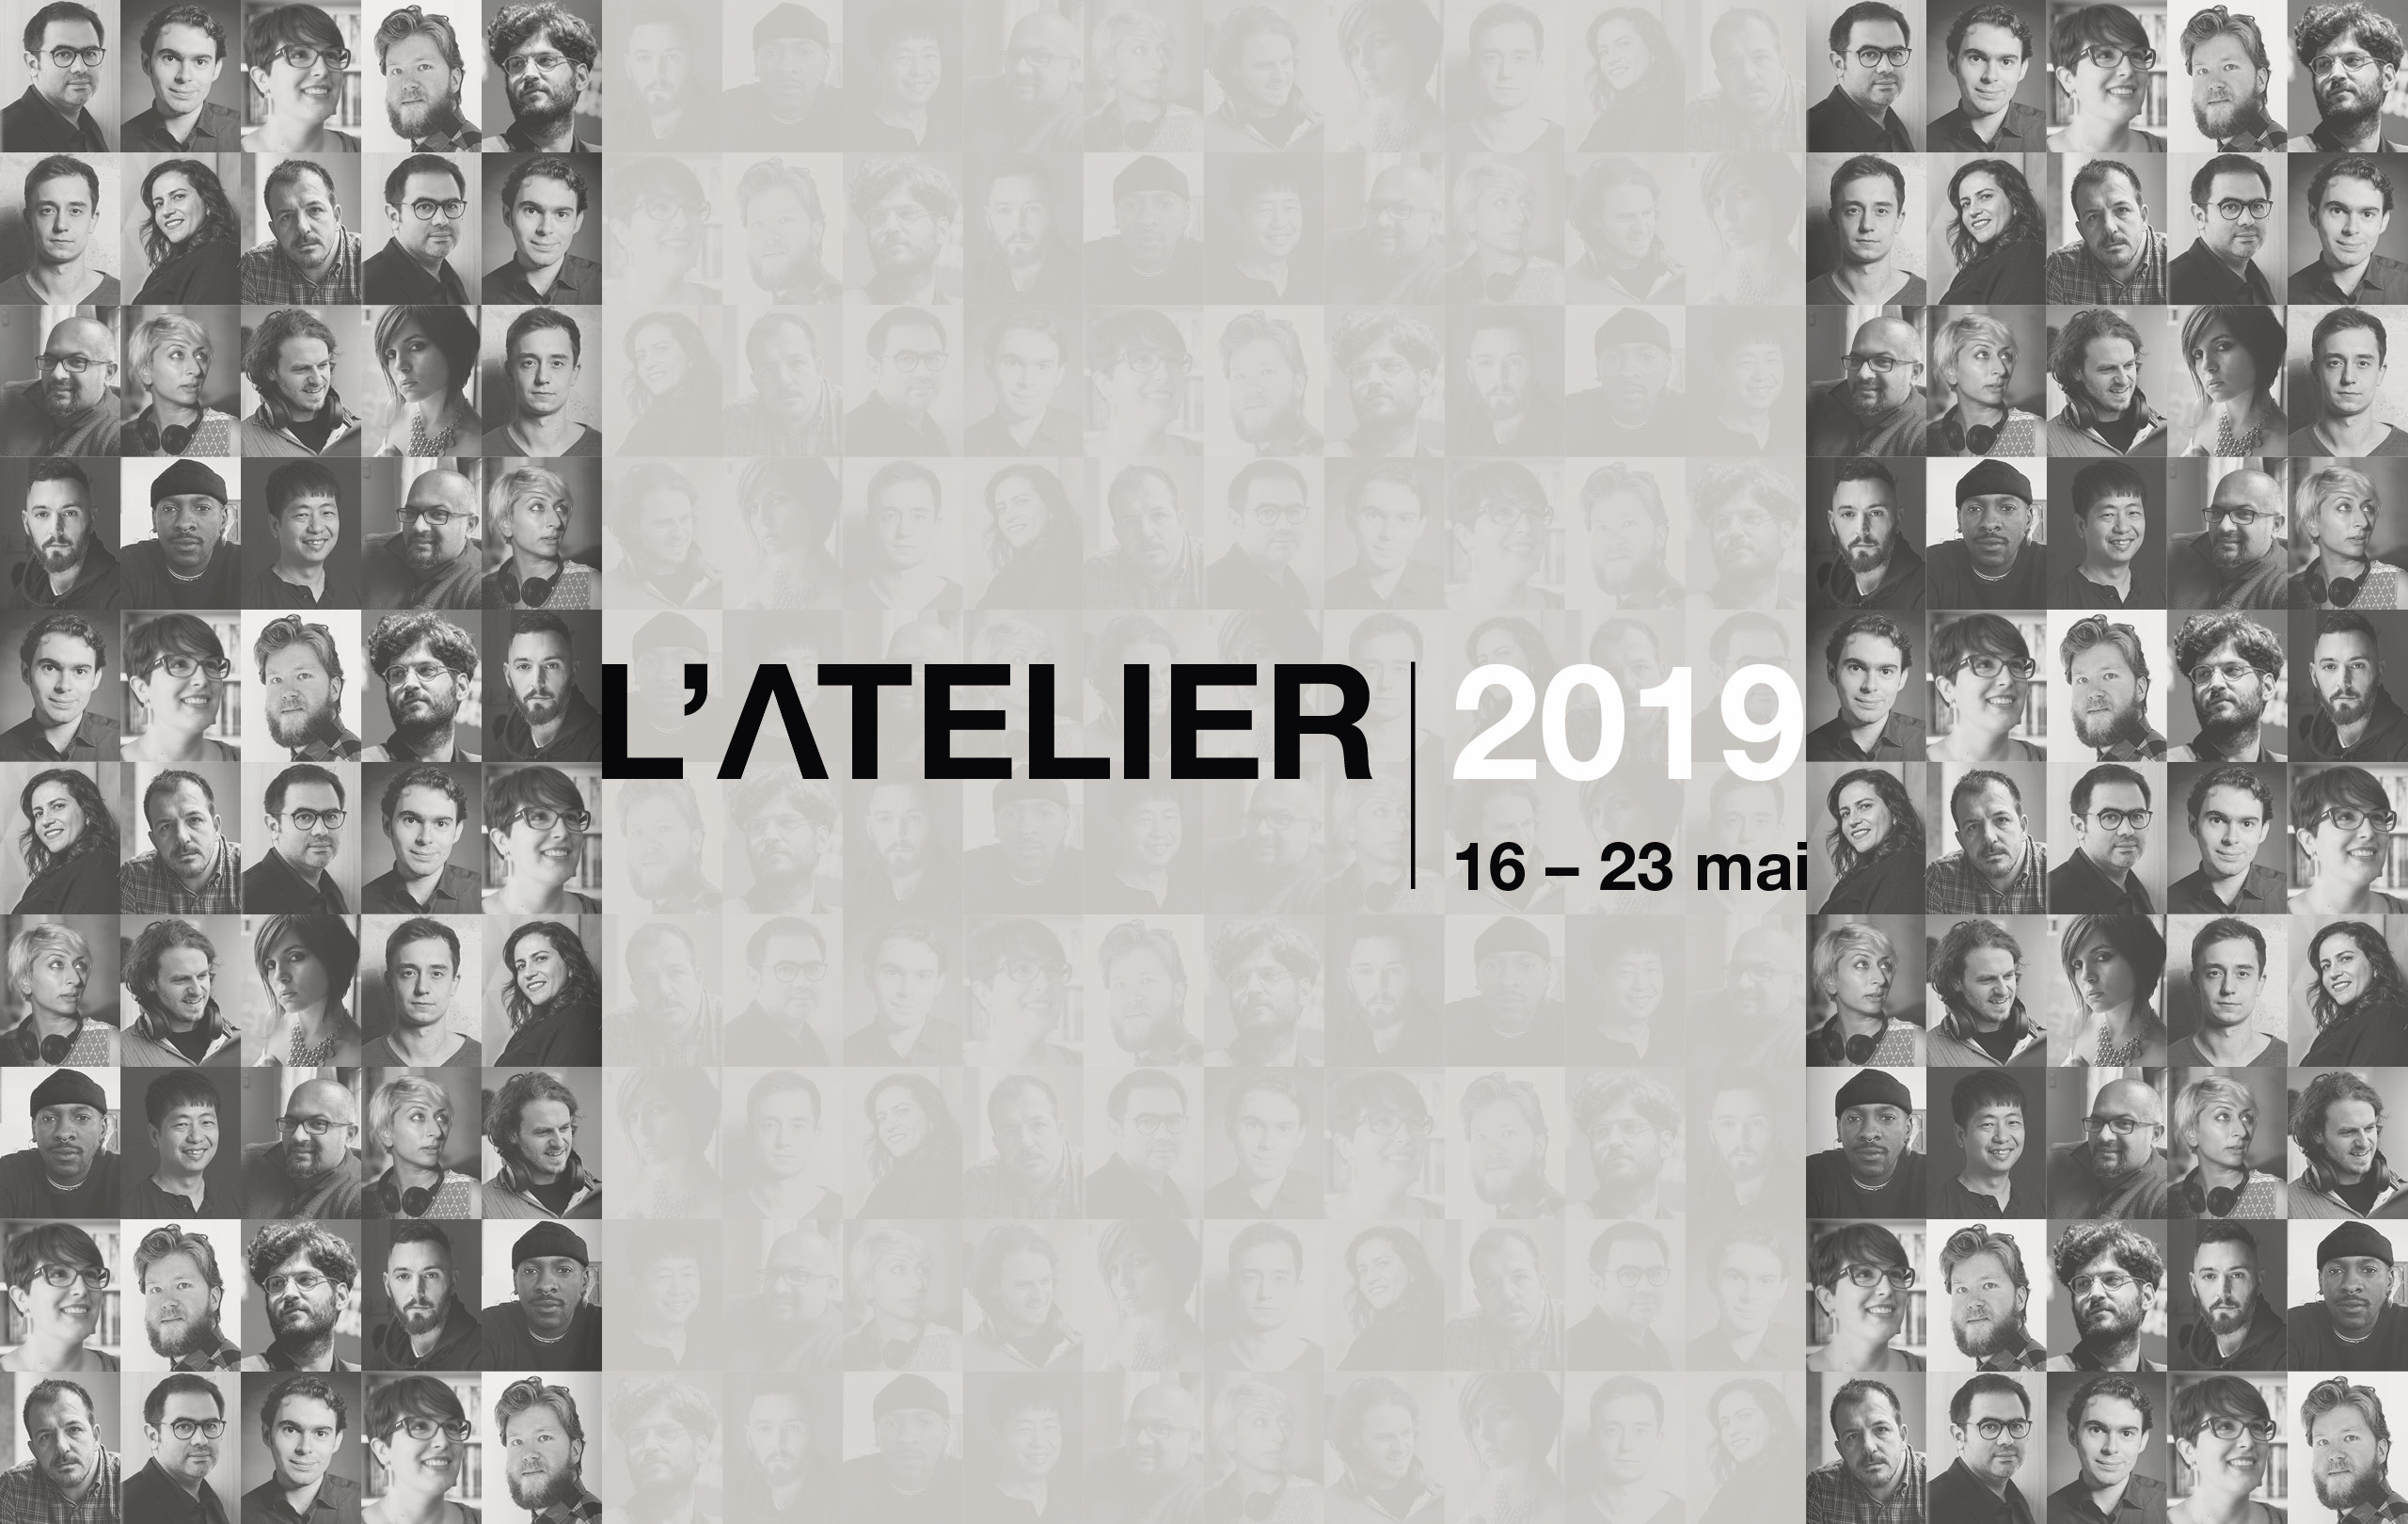 L'Atelier 2019 - Selection Project